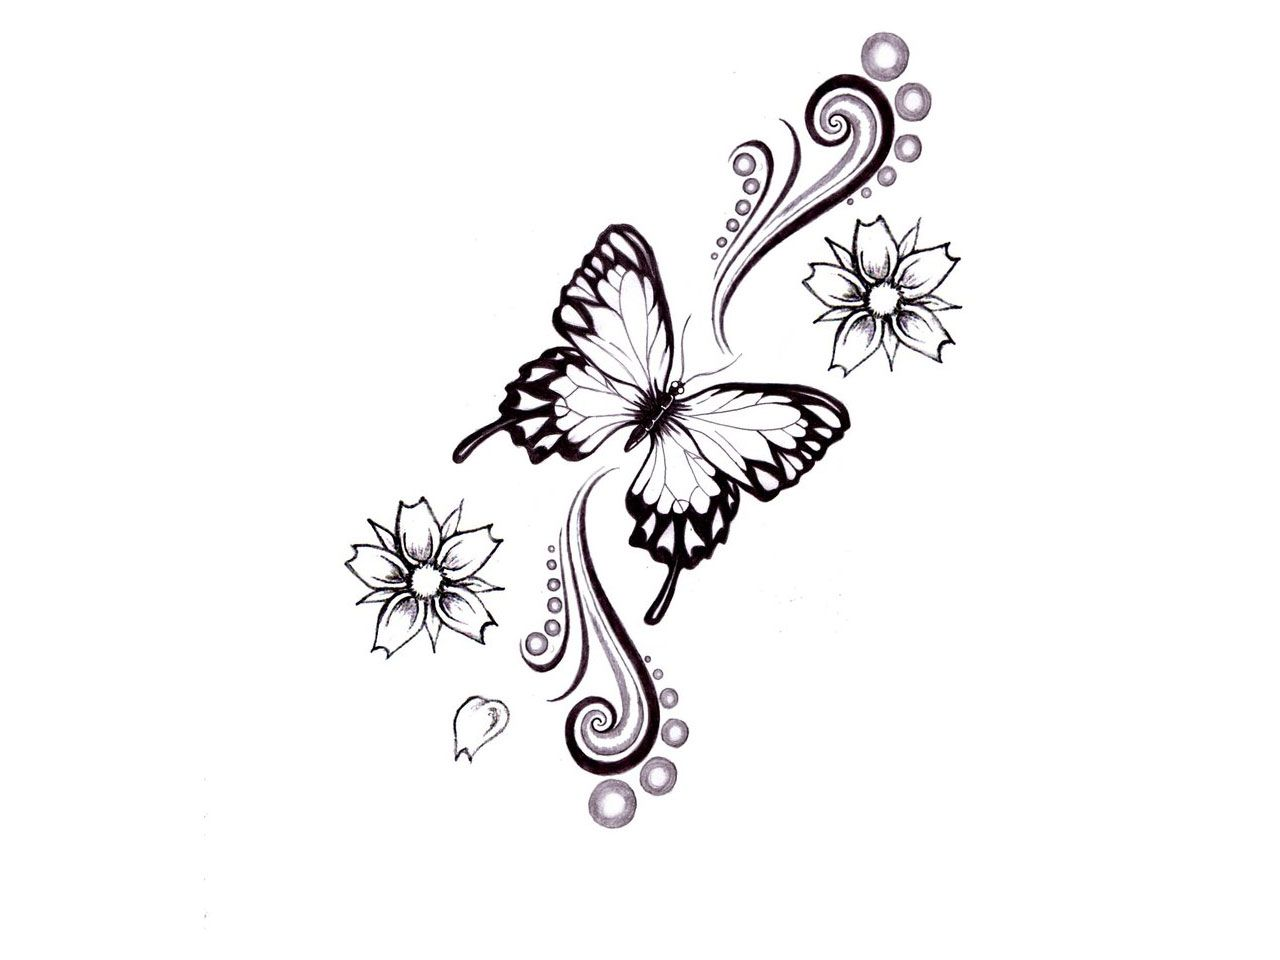 Butterfly star tattoo designs - Heart And Flower Tattoo Designs Index Of Wp Content Gallery Category